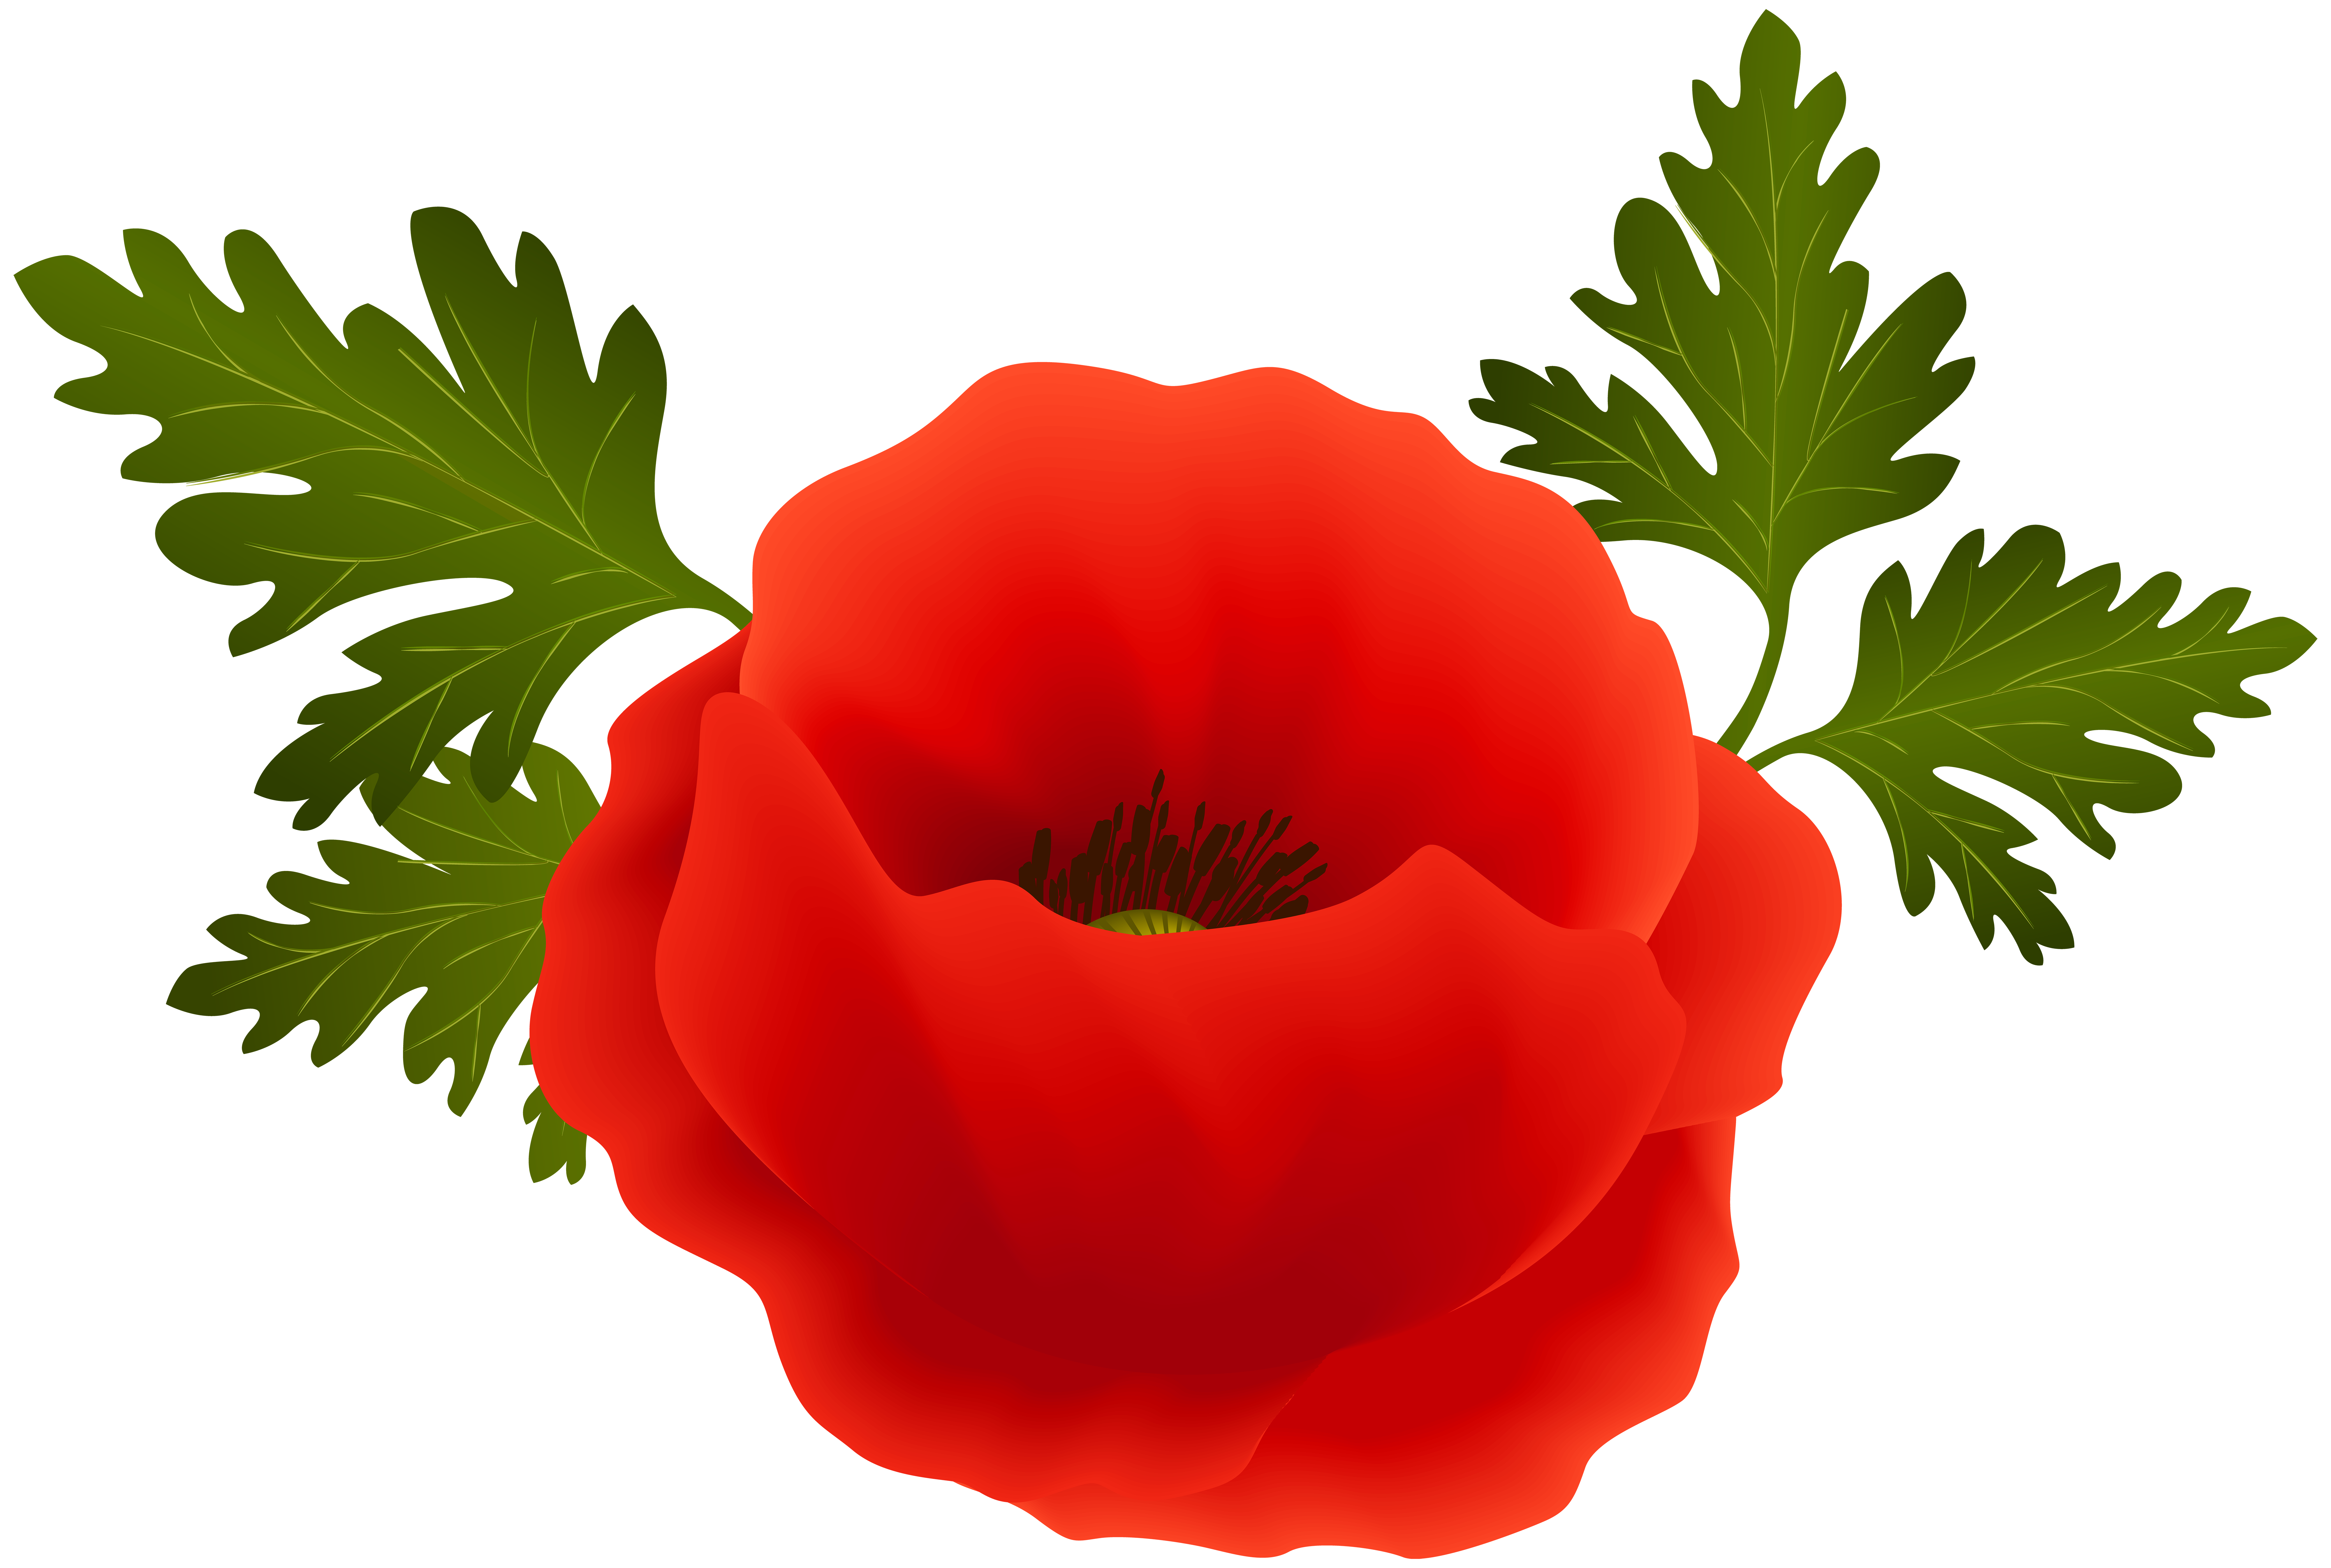 clipart library library Png clip art image. Poppy clipart